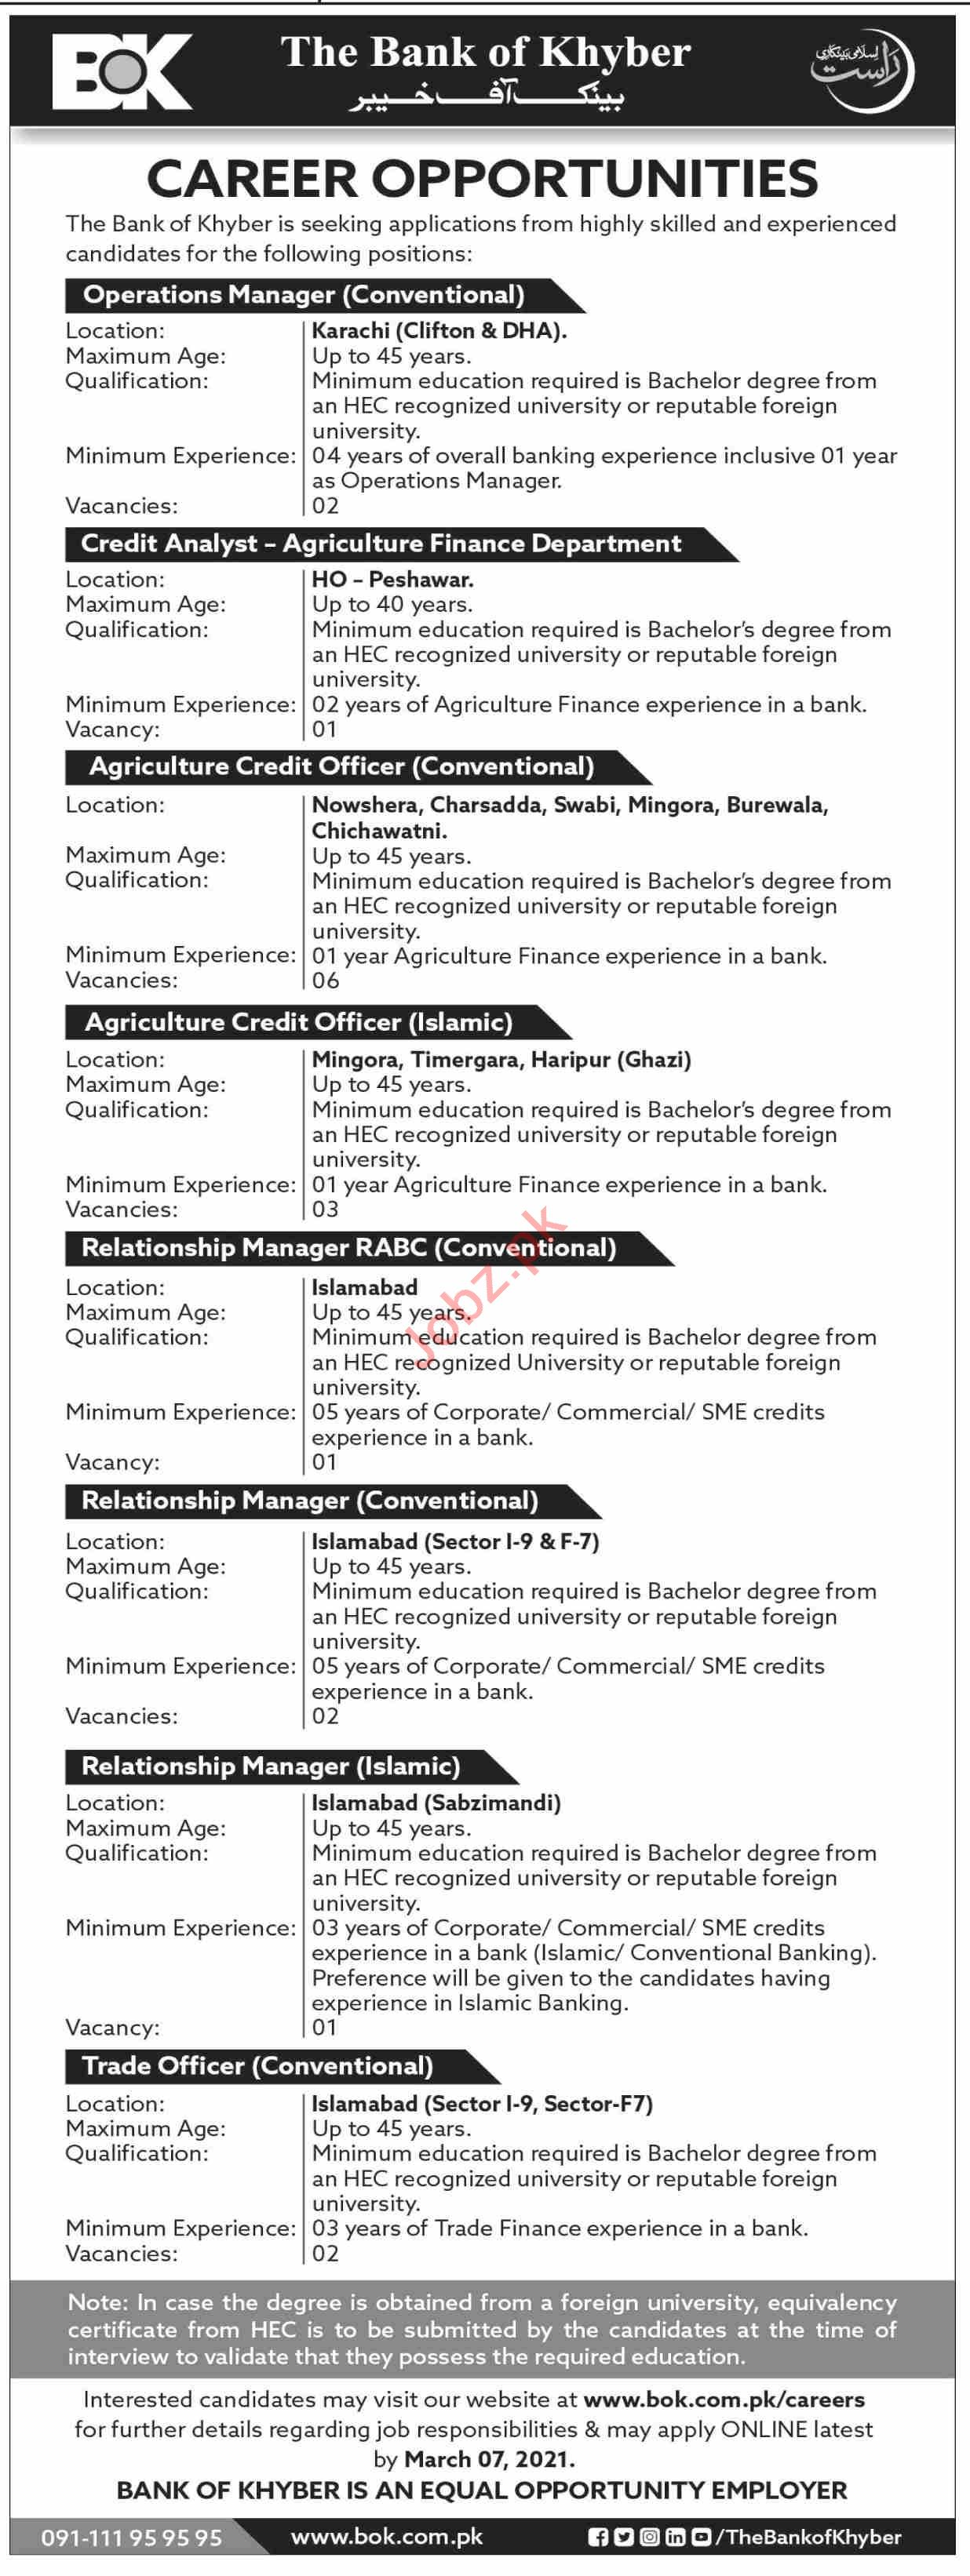 The Bank of Khyber BOK Jobs 2021 for Operations Manager